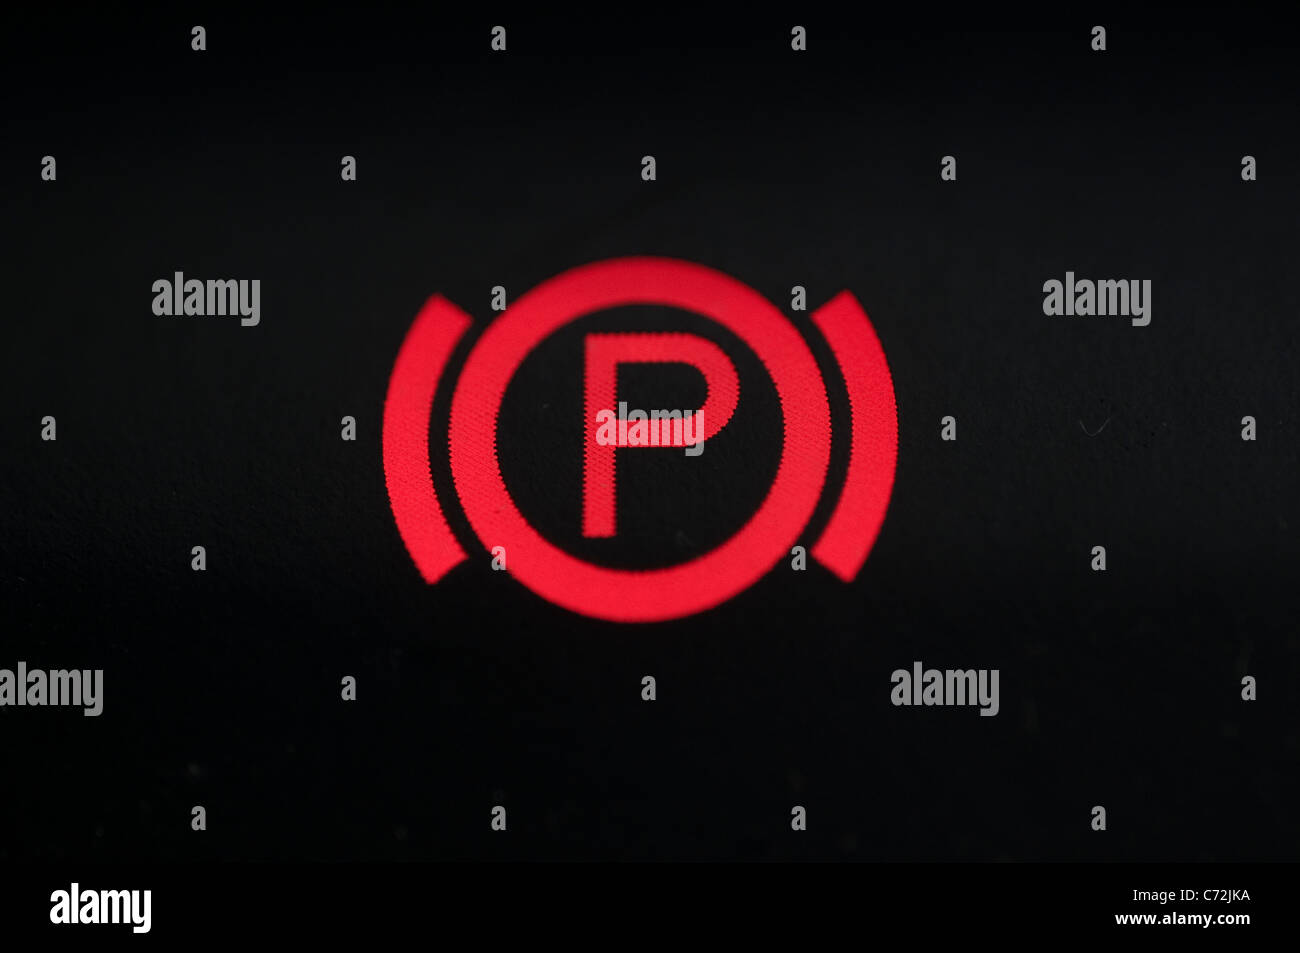 P buttonparking sign on citroen car concept deck design p buttonparking sign on citroen car concept deck design element garage glossy graphic icon biocorpaavc